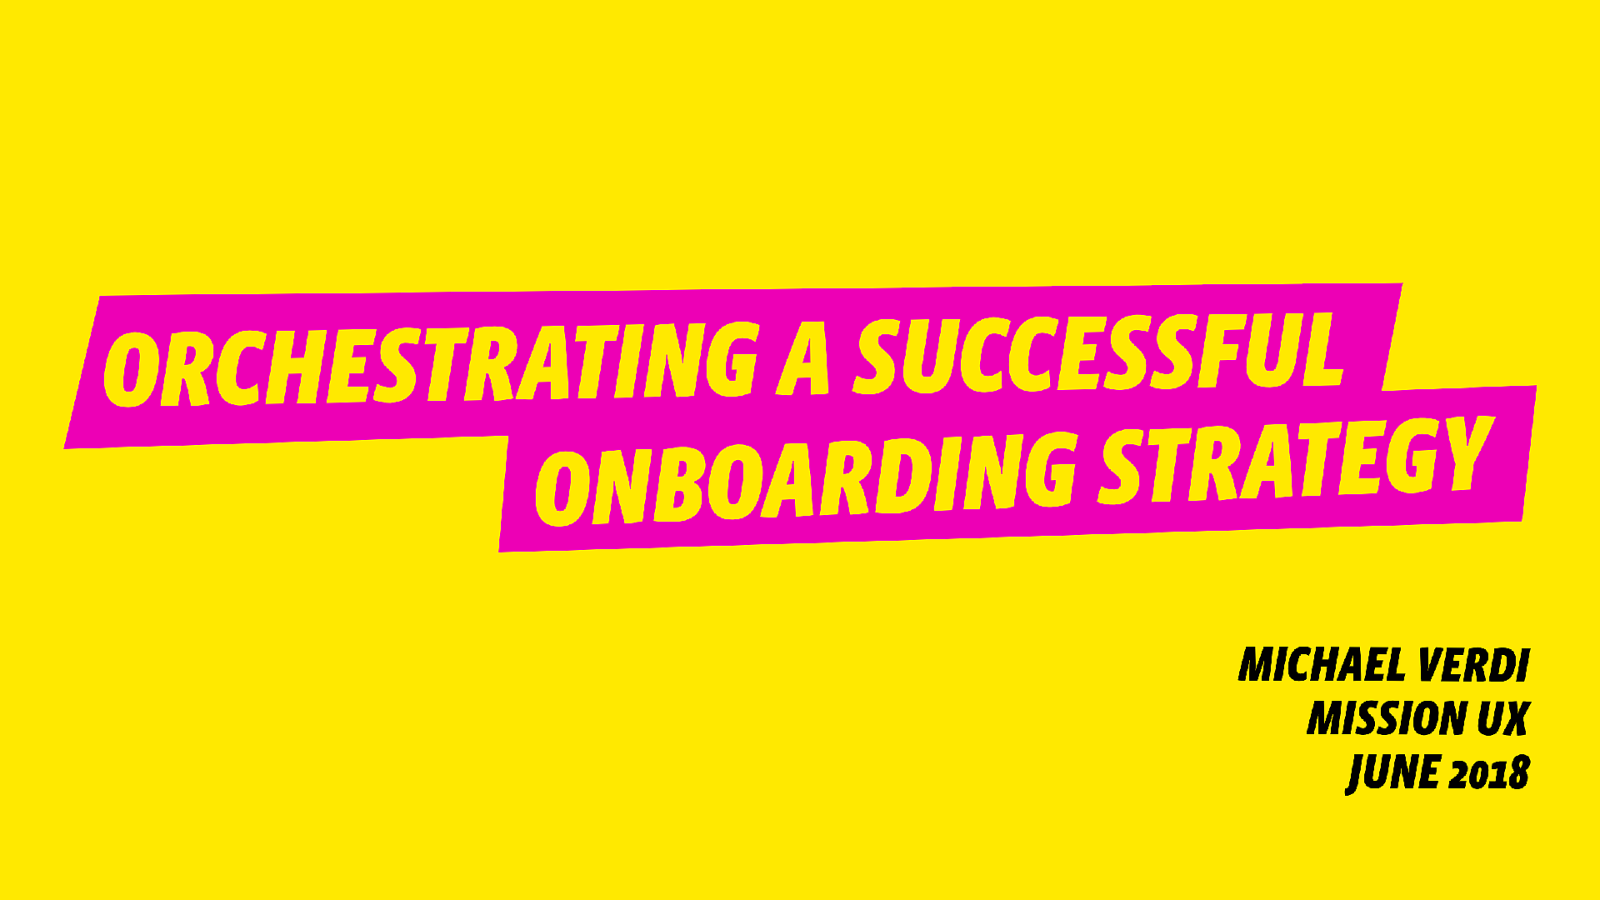 Orchestrating a Successful Onboarding Strategy